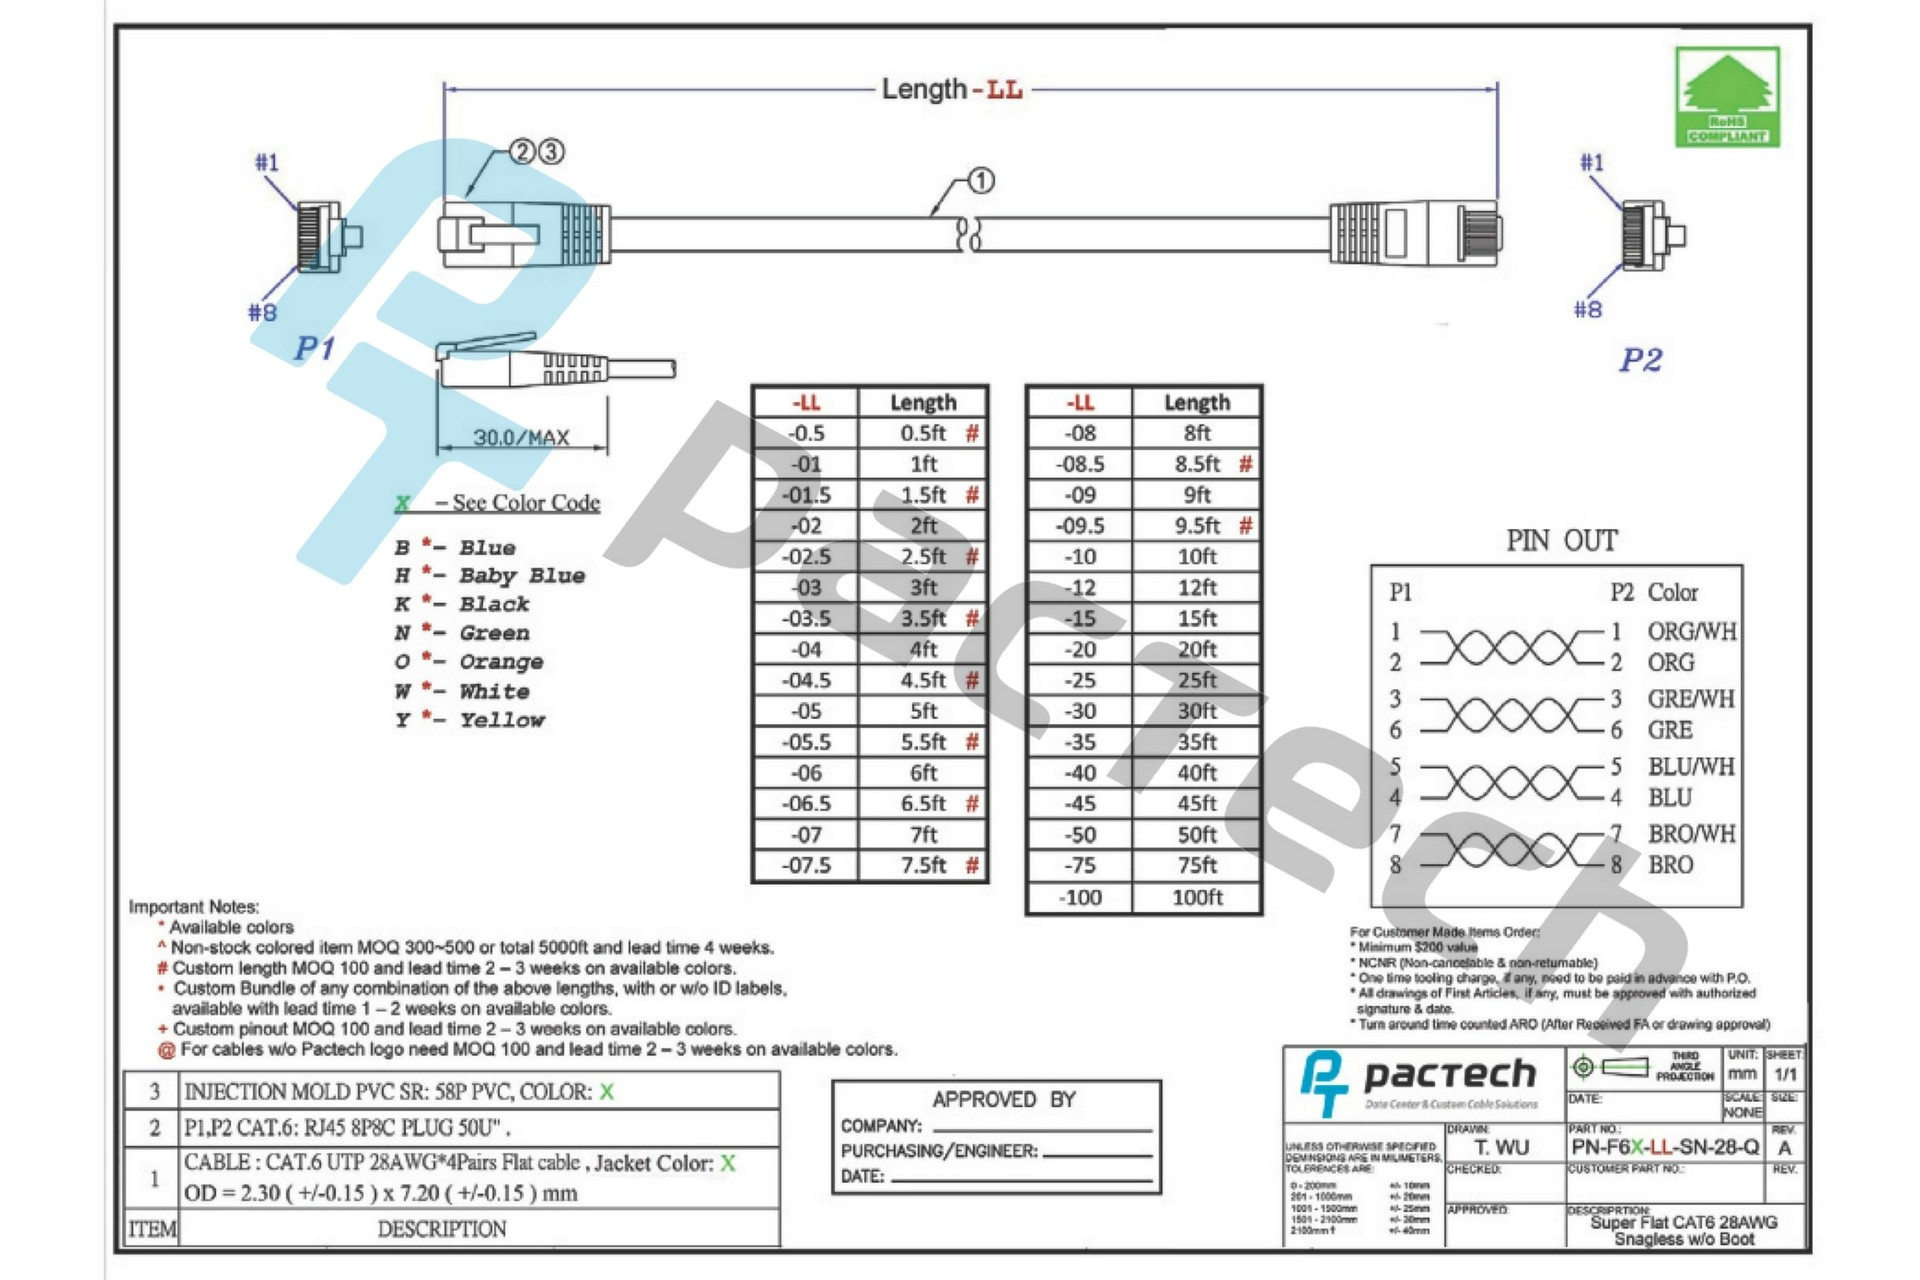 [DIAGRAM] Cat 6 Connector Wiring Diagram 568a 568b FULL